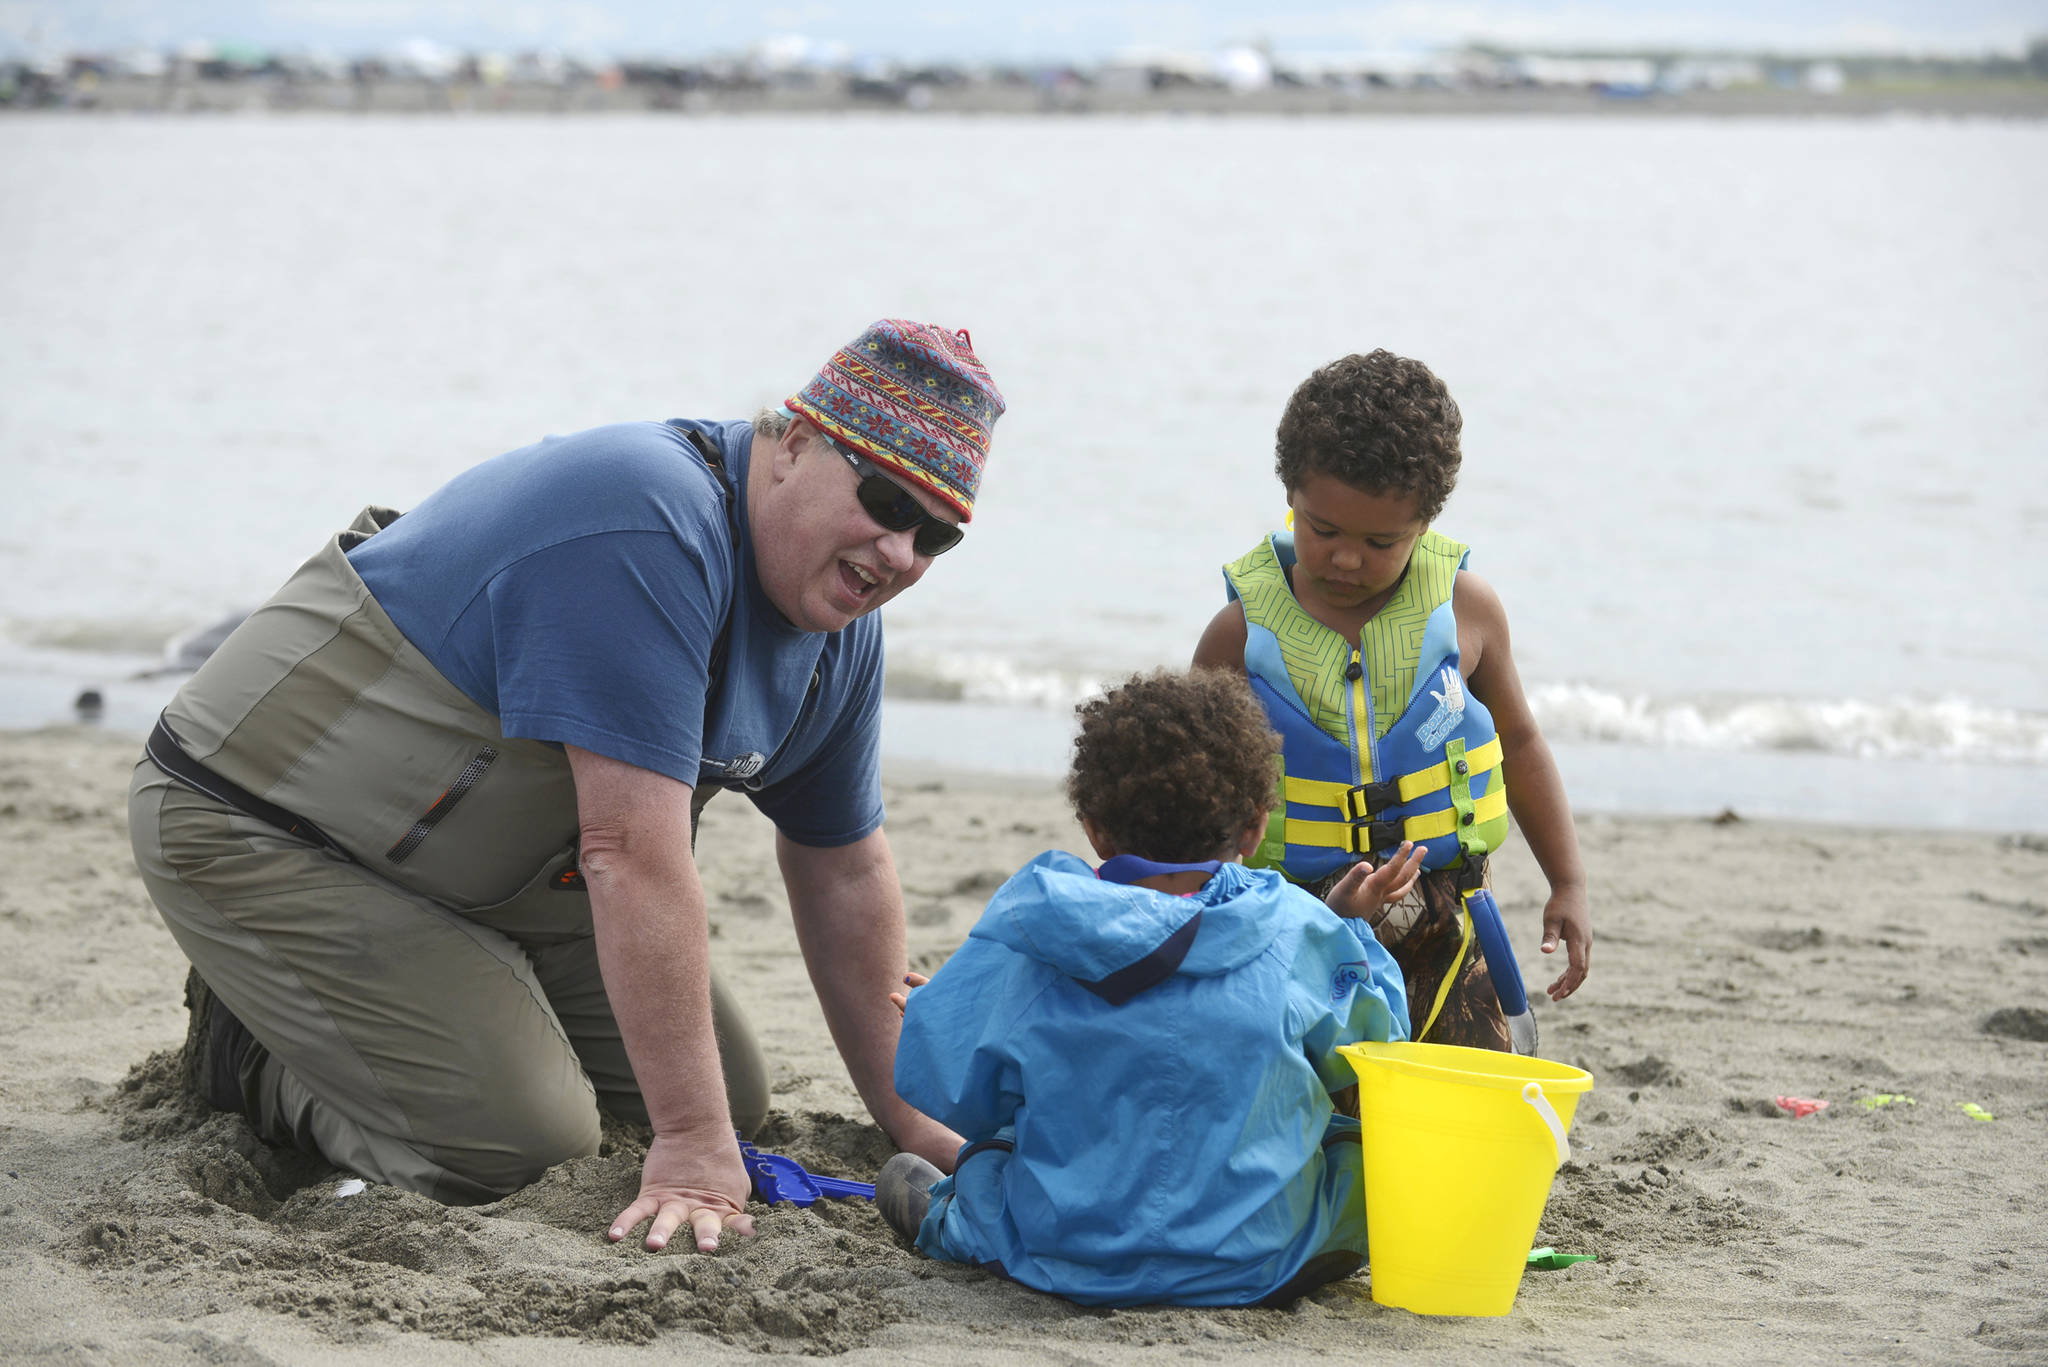 "Dipnetter Brad Gamblin (left) digs in the sand of Kenai's north beach with his grandchildren Stella (in blue) and Marly Wilson on Thursday, July 26, 2018 in Kenai, Alaska. The three, plus grandmother Cher Gamblin, brought the grandchildren on their first dipnetting trip this year. The morning, Brad Gamblin said, ""was very productive."" Getting up early, he said the family had caught a dozen salmon by 9 a.m. (Ben Boettger/Peninsula Clarion)"